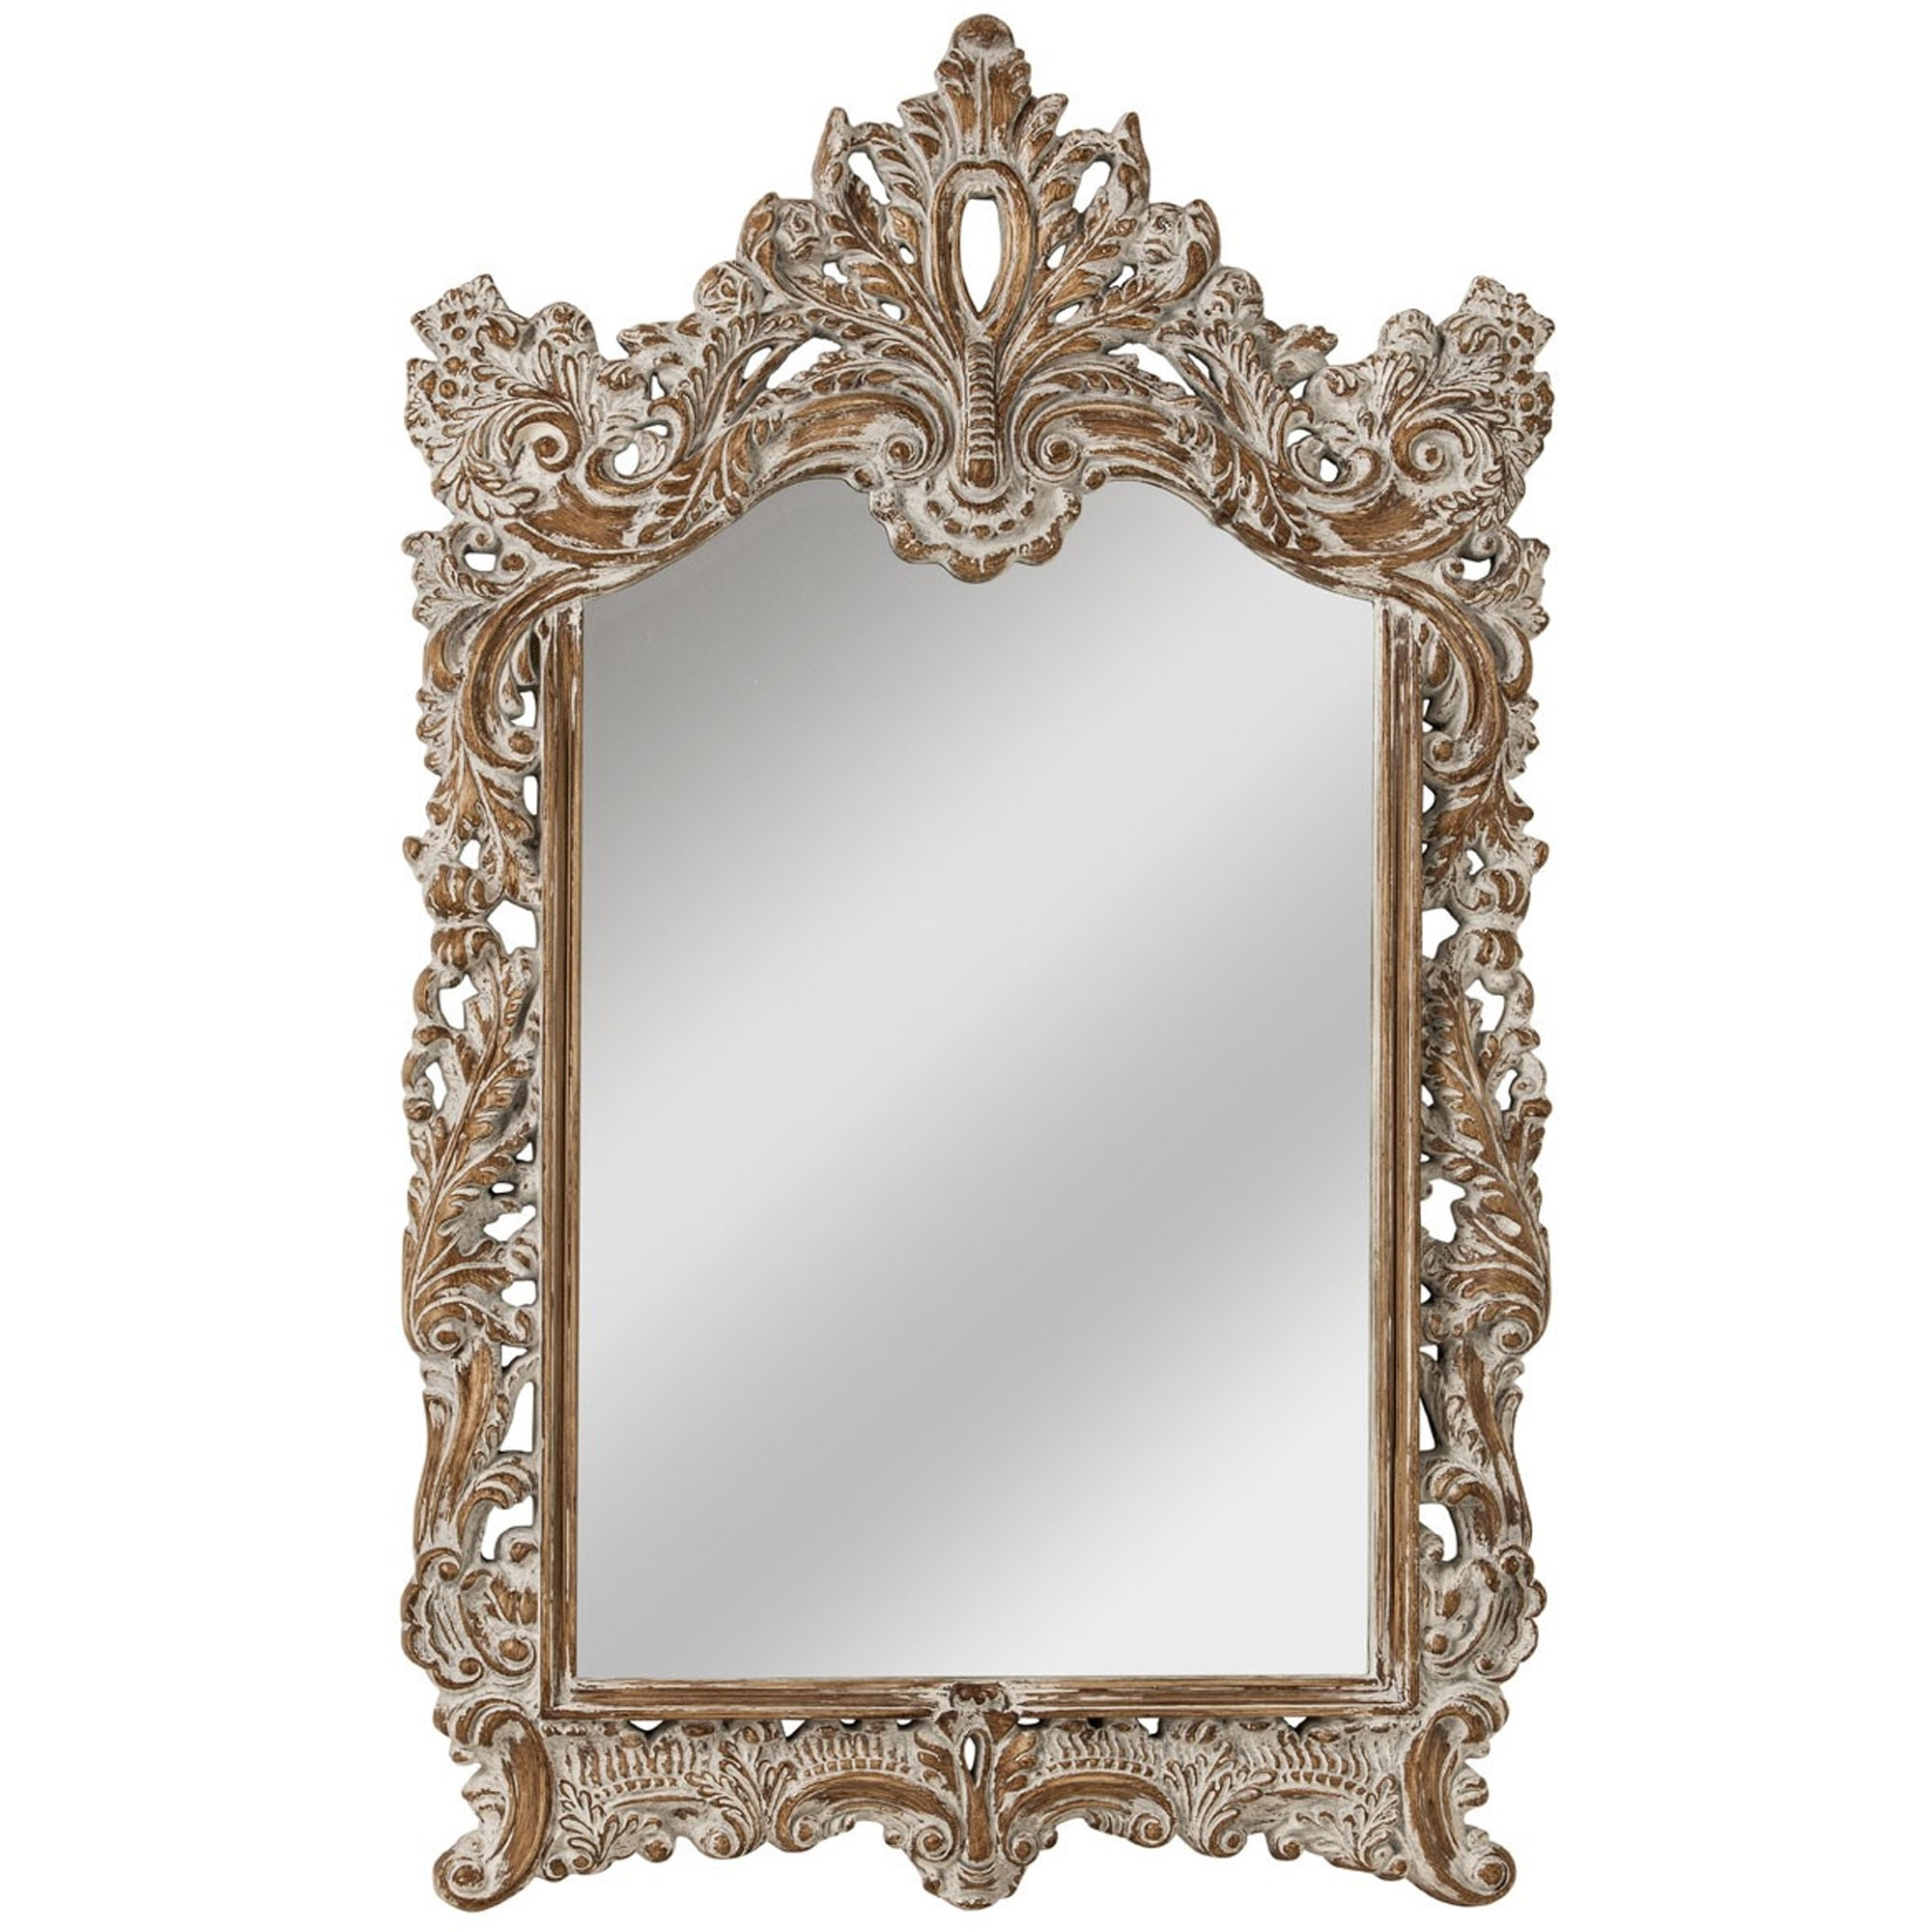 Preferred Shabby Chic Baroque Wall Mirror Intended For Baroque Wall Mirrors (View 13 of 20)